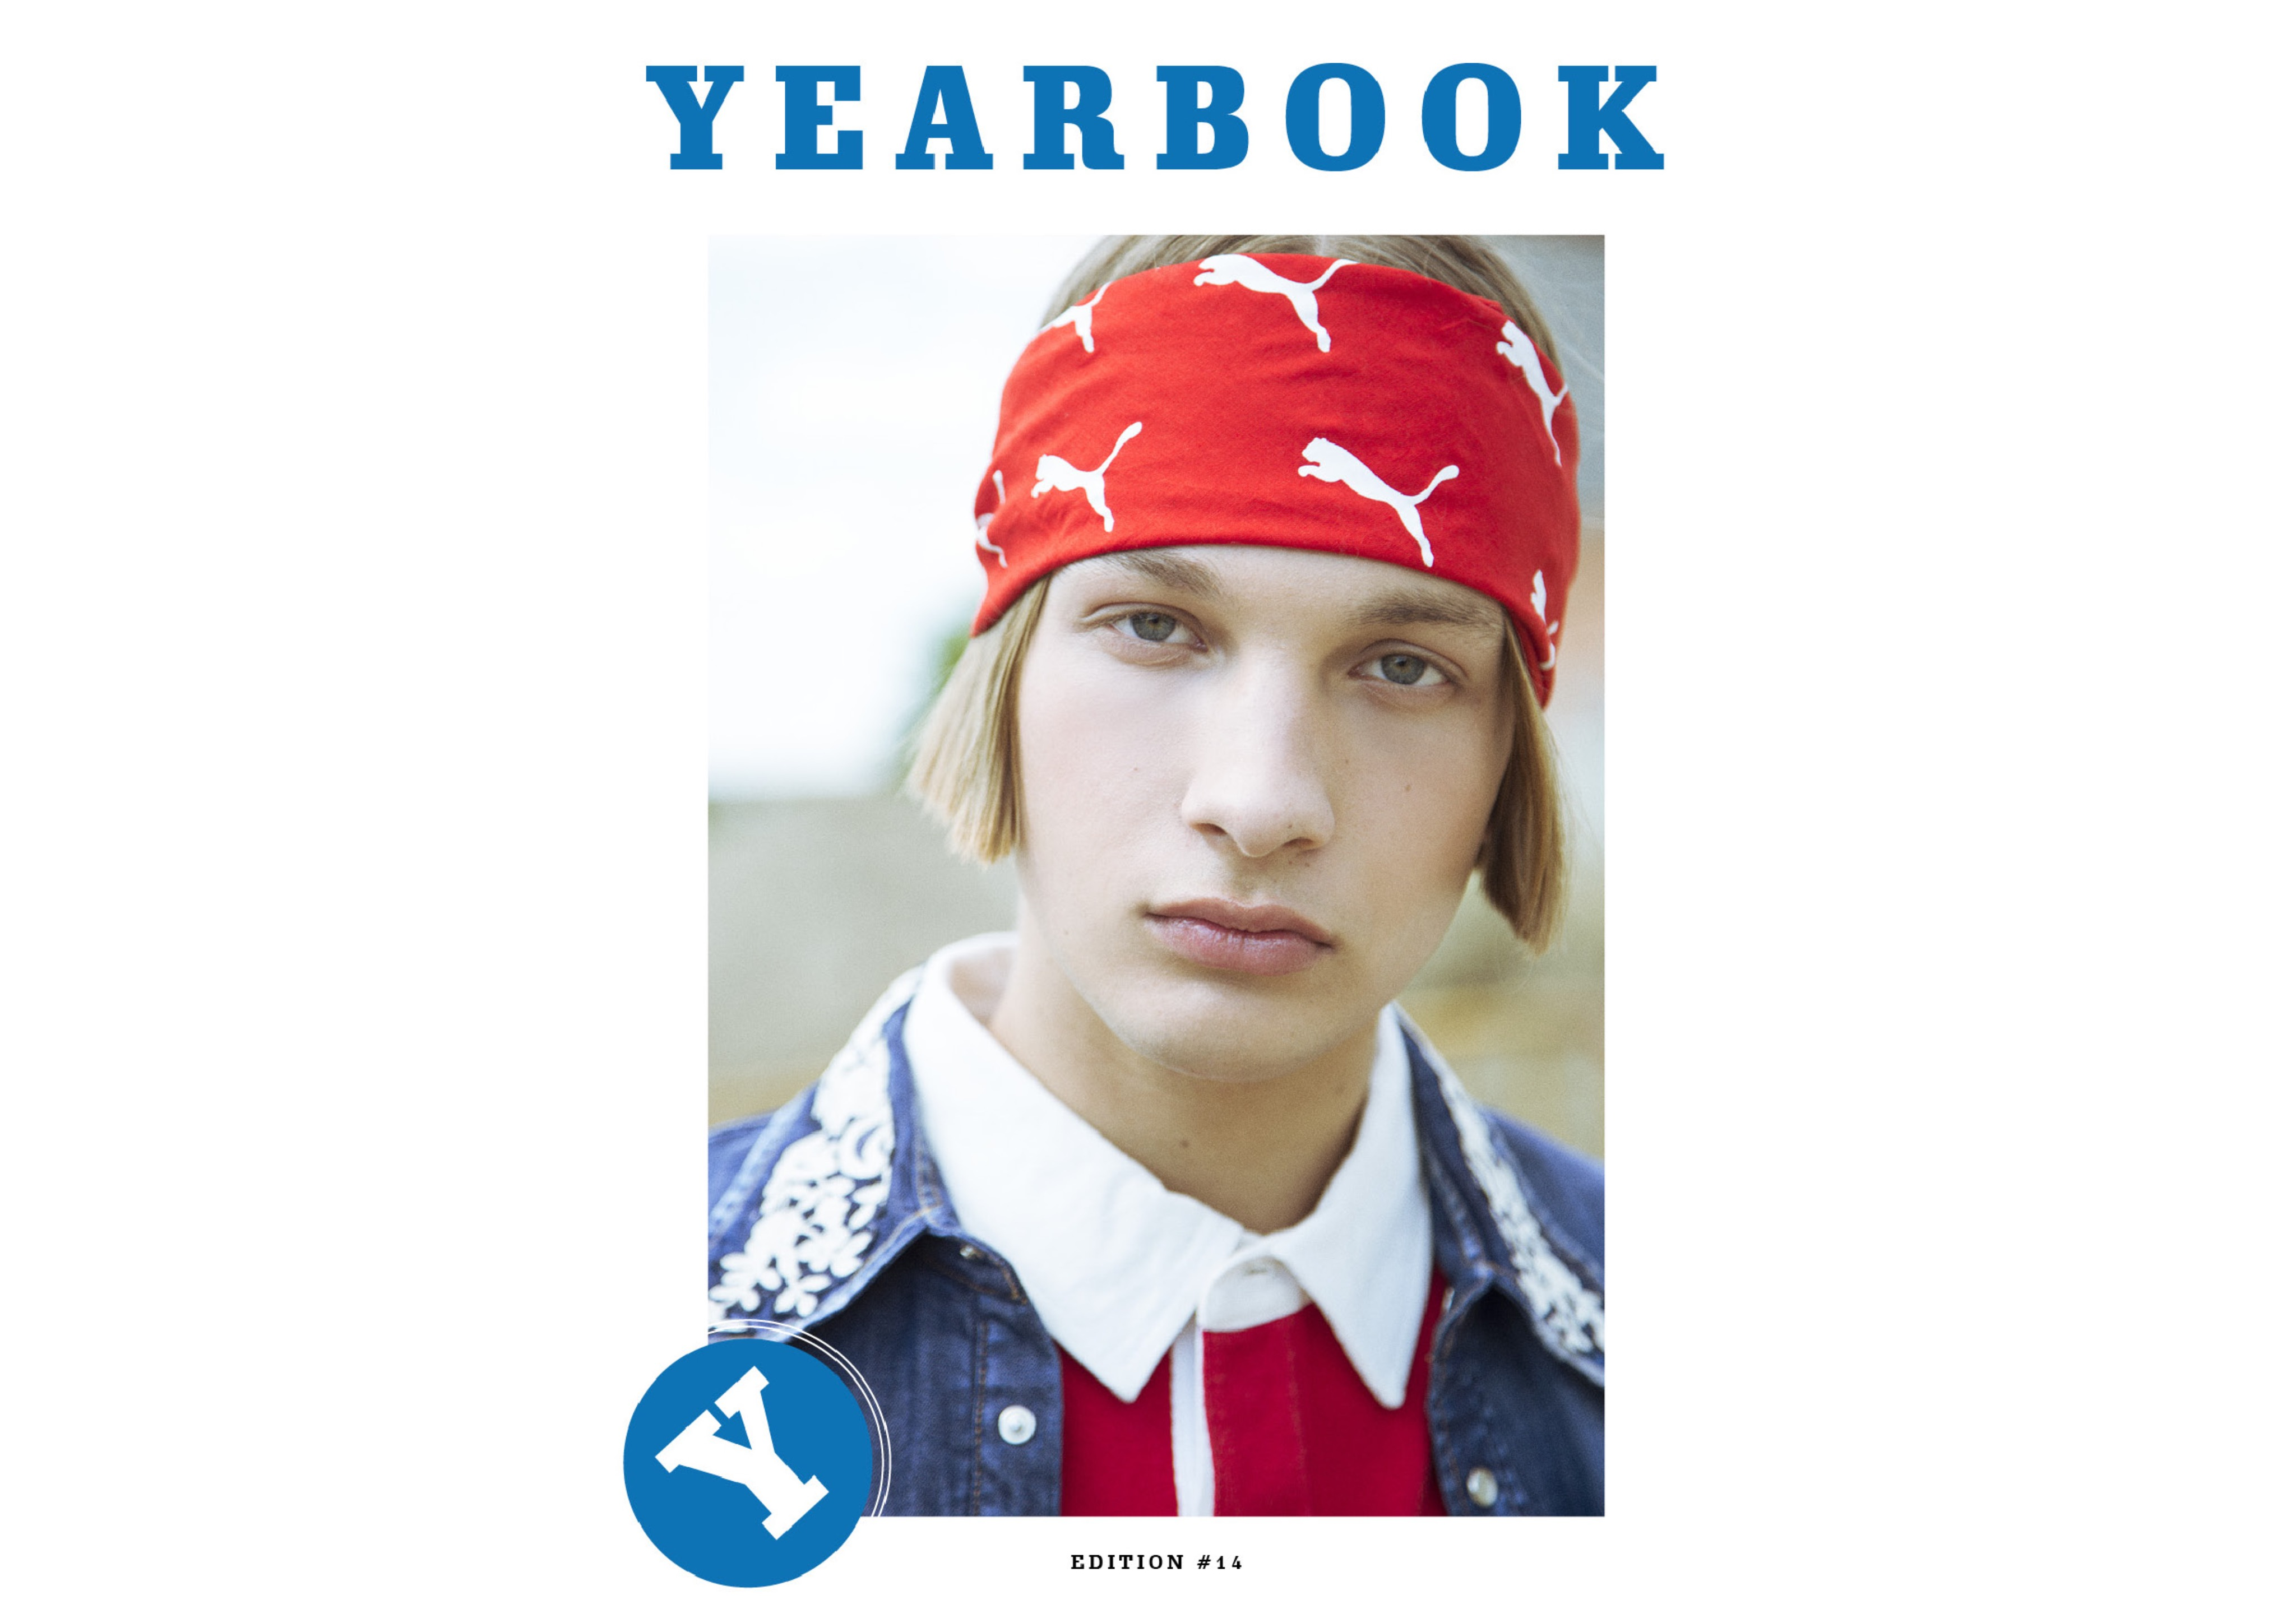 Yearbook Fanzine #14 (Hardback Print Edition)